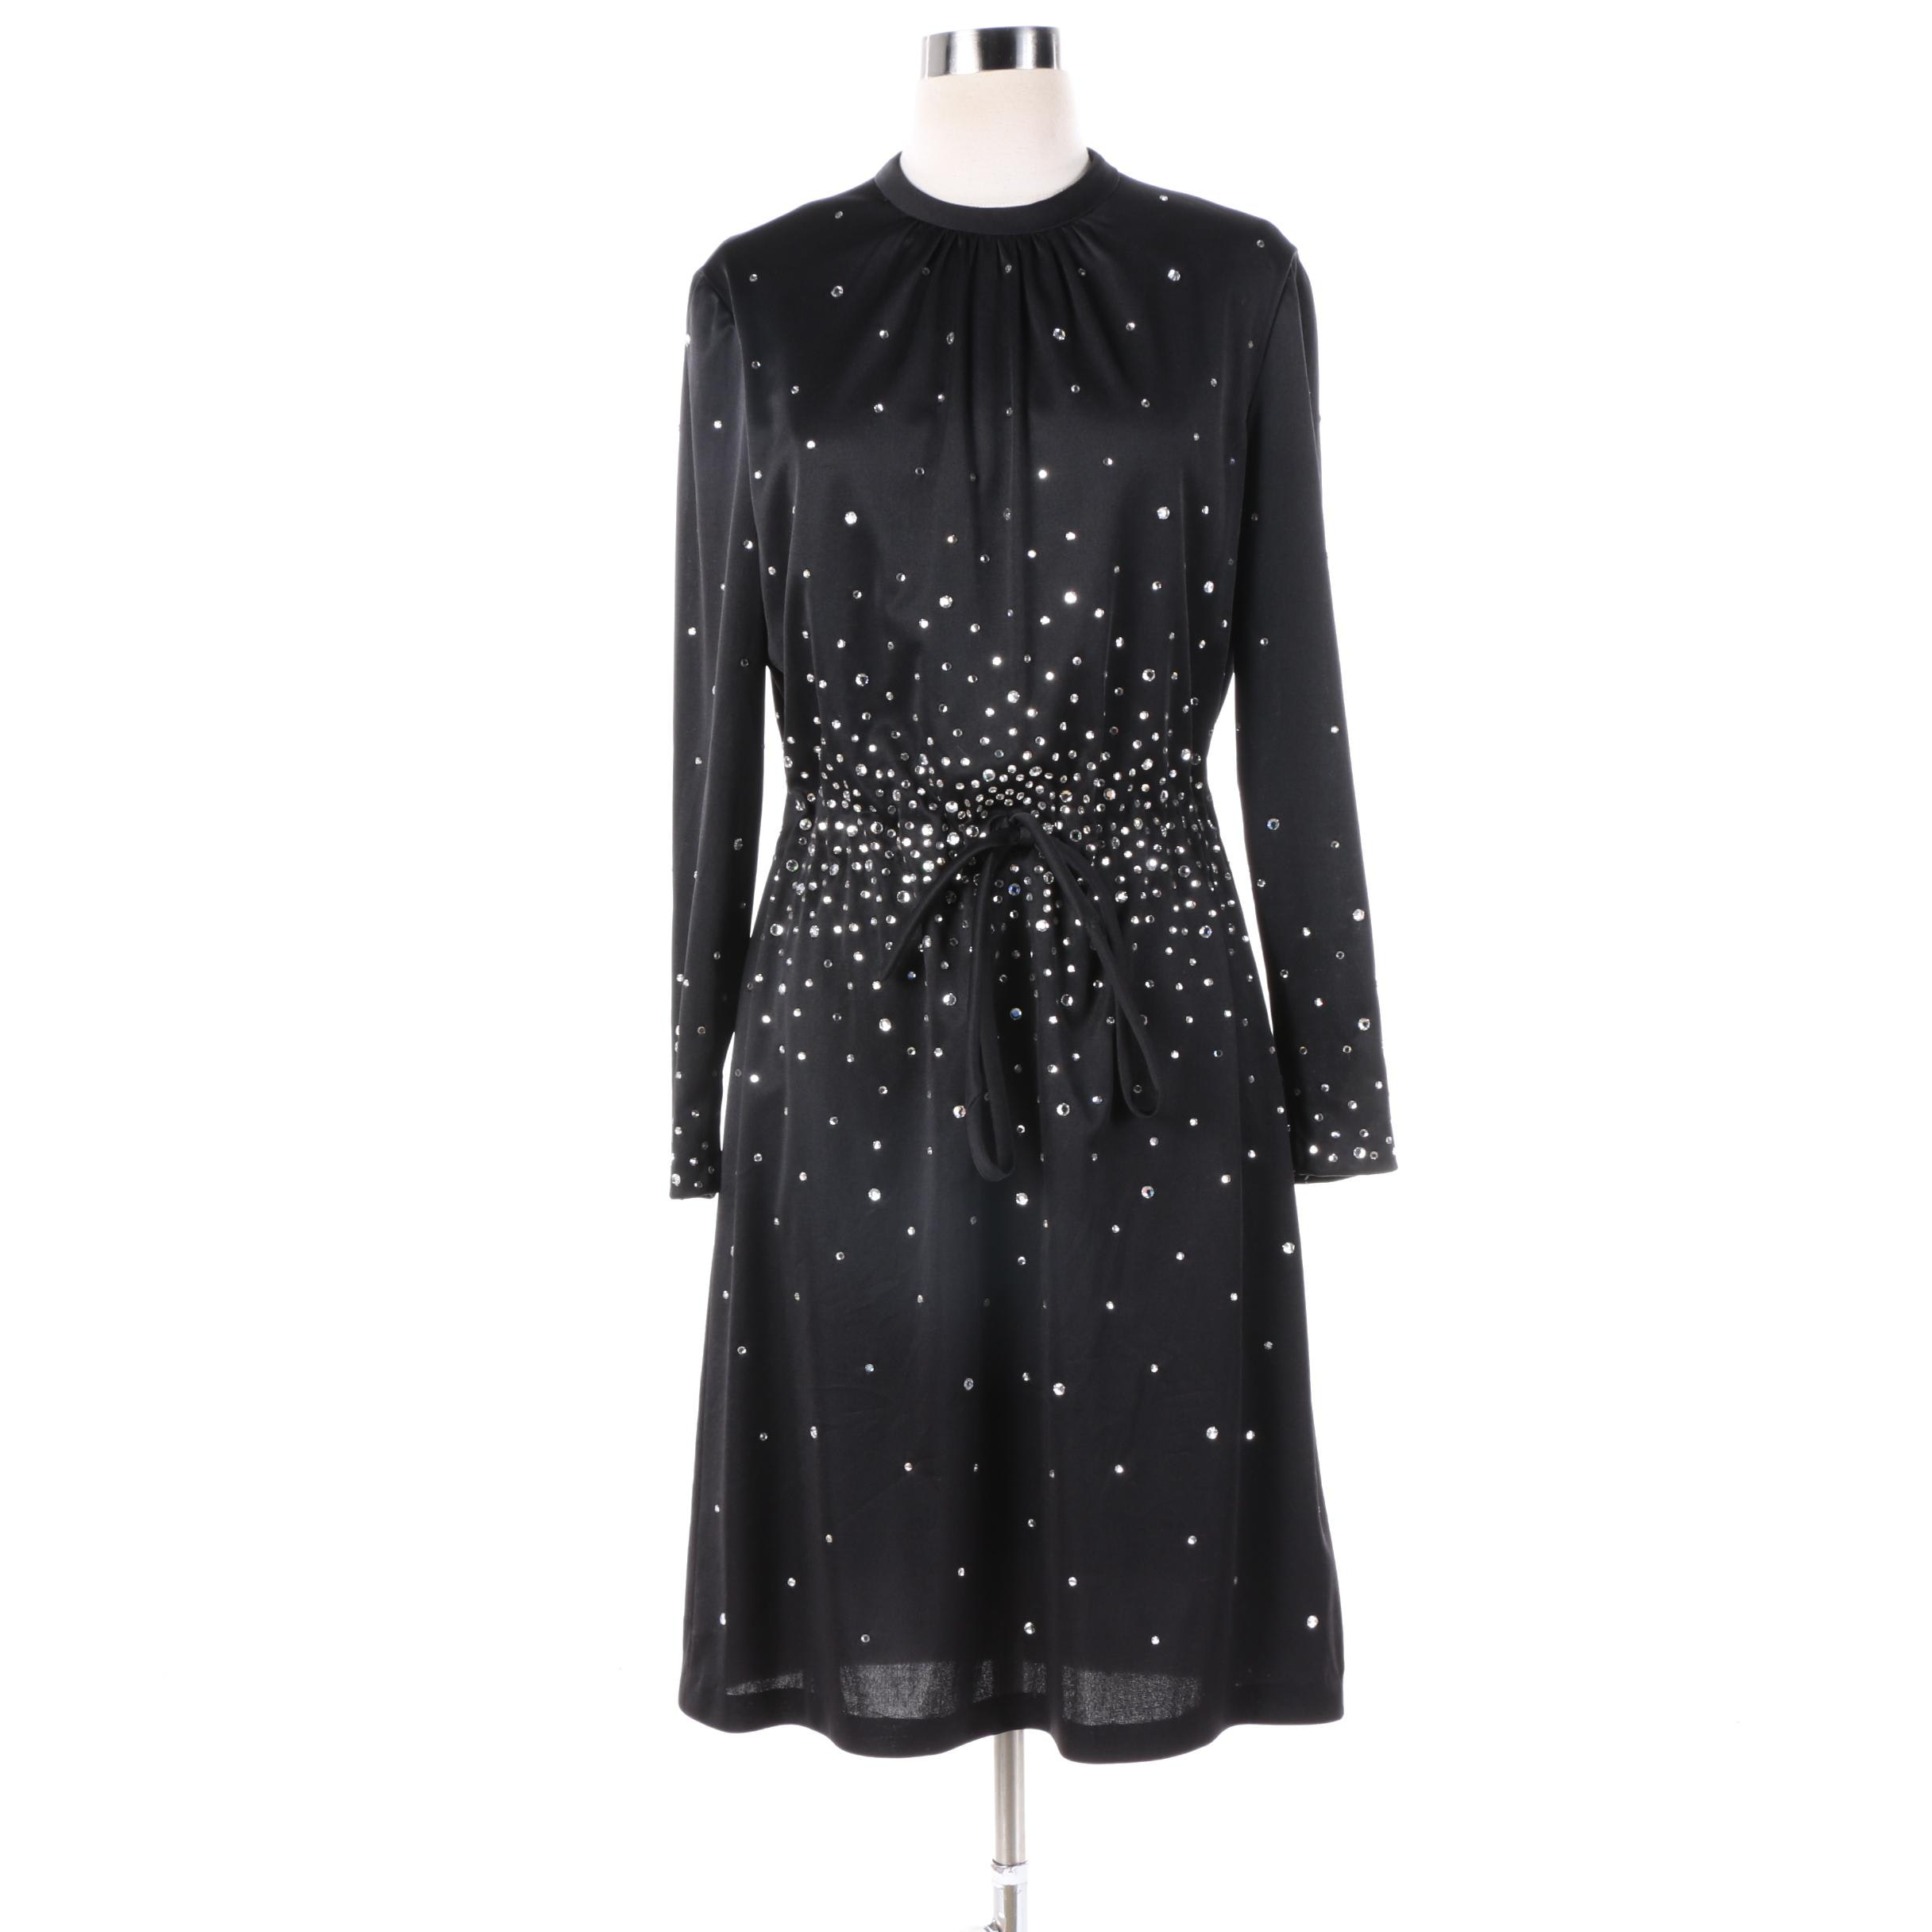 1960s Vintage Arbé Black Cocktail Dress with Rhinestone Burst Accent